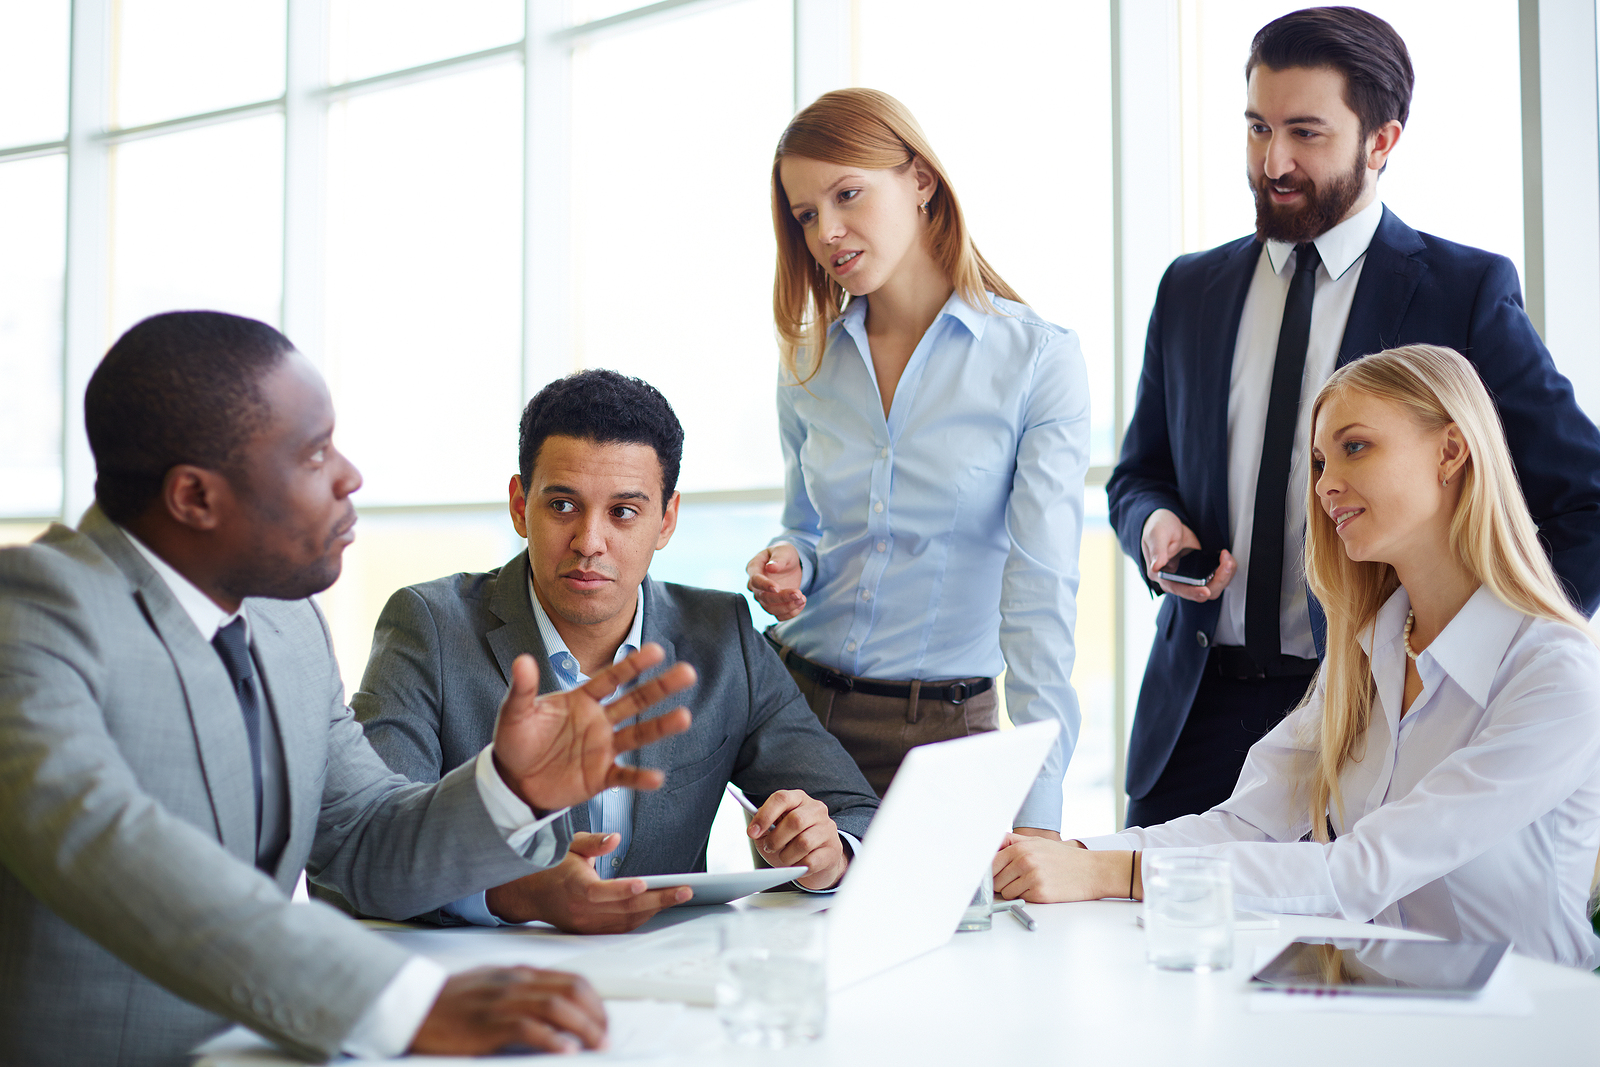 Positive Leadership: Why Most Managers Get it Wrong (and how to get it right)